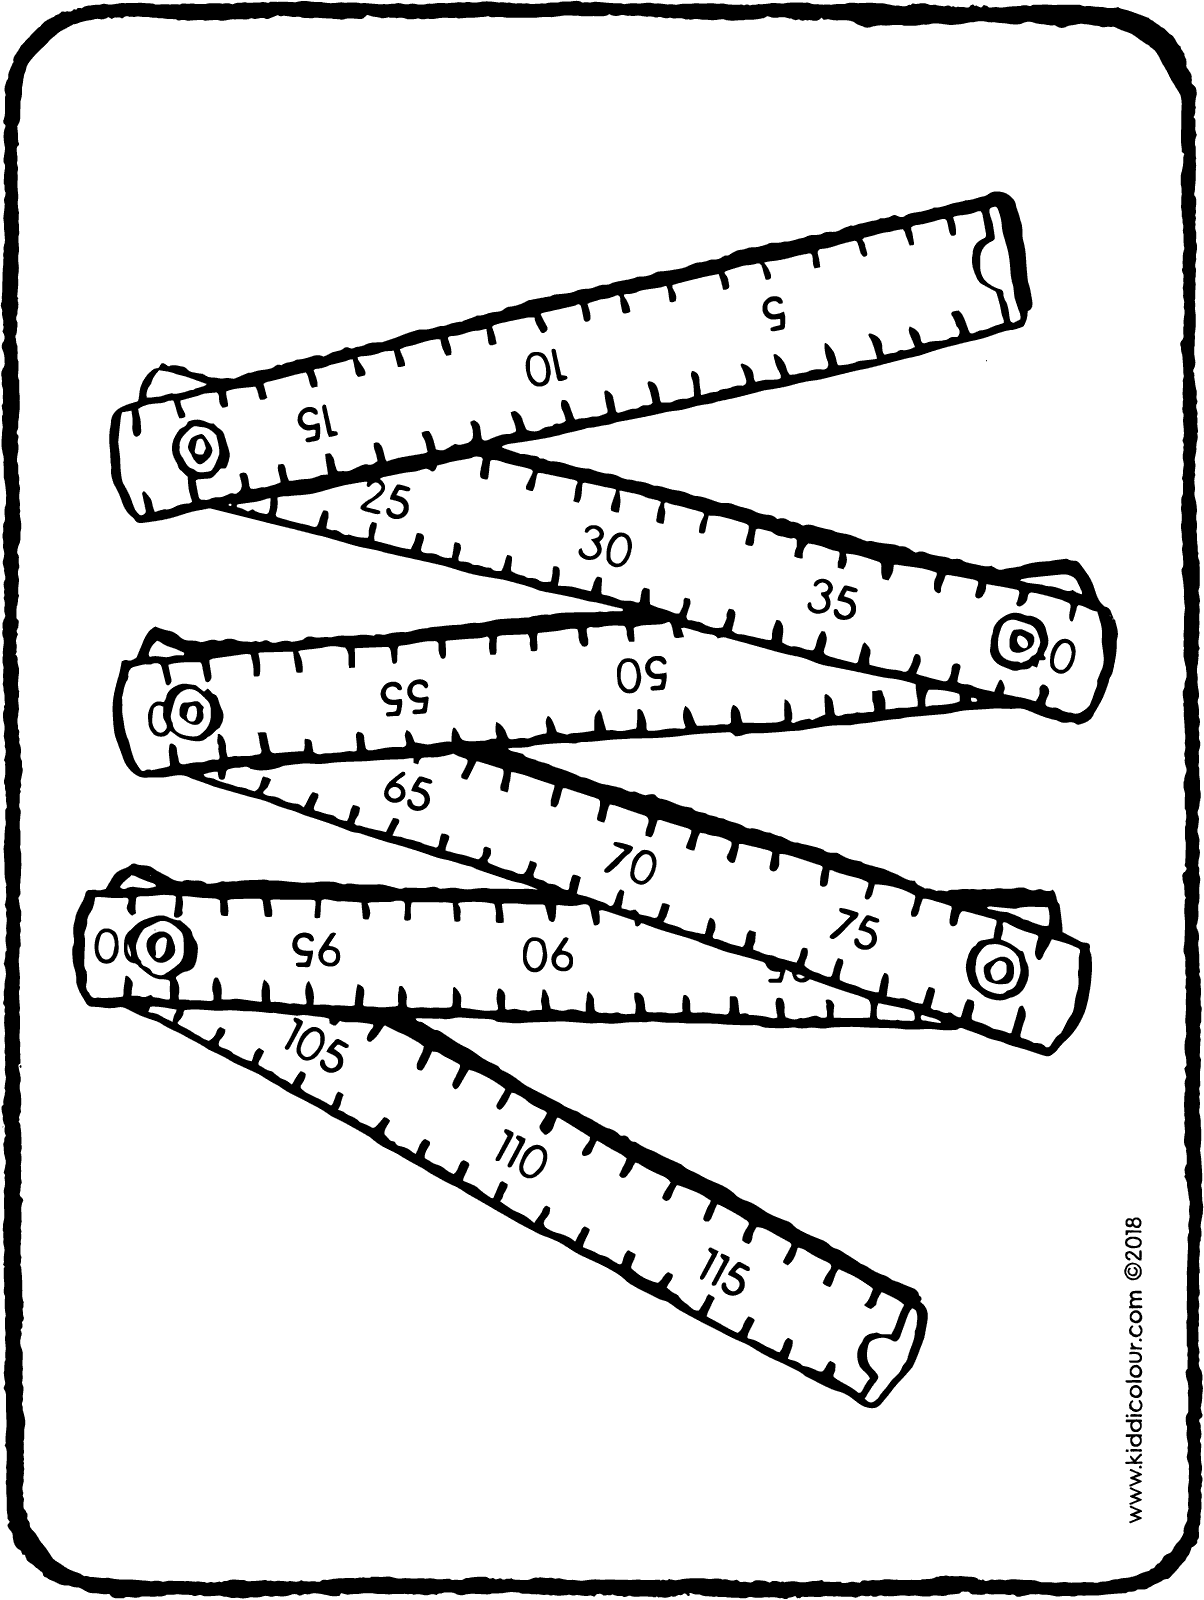 carpenter's wooden ruler colouring page drawing picture 01H